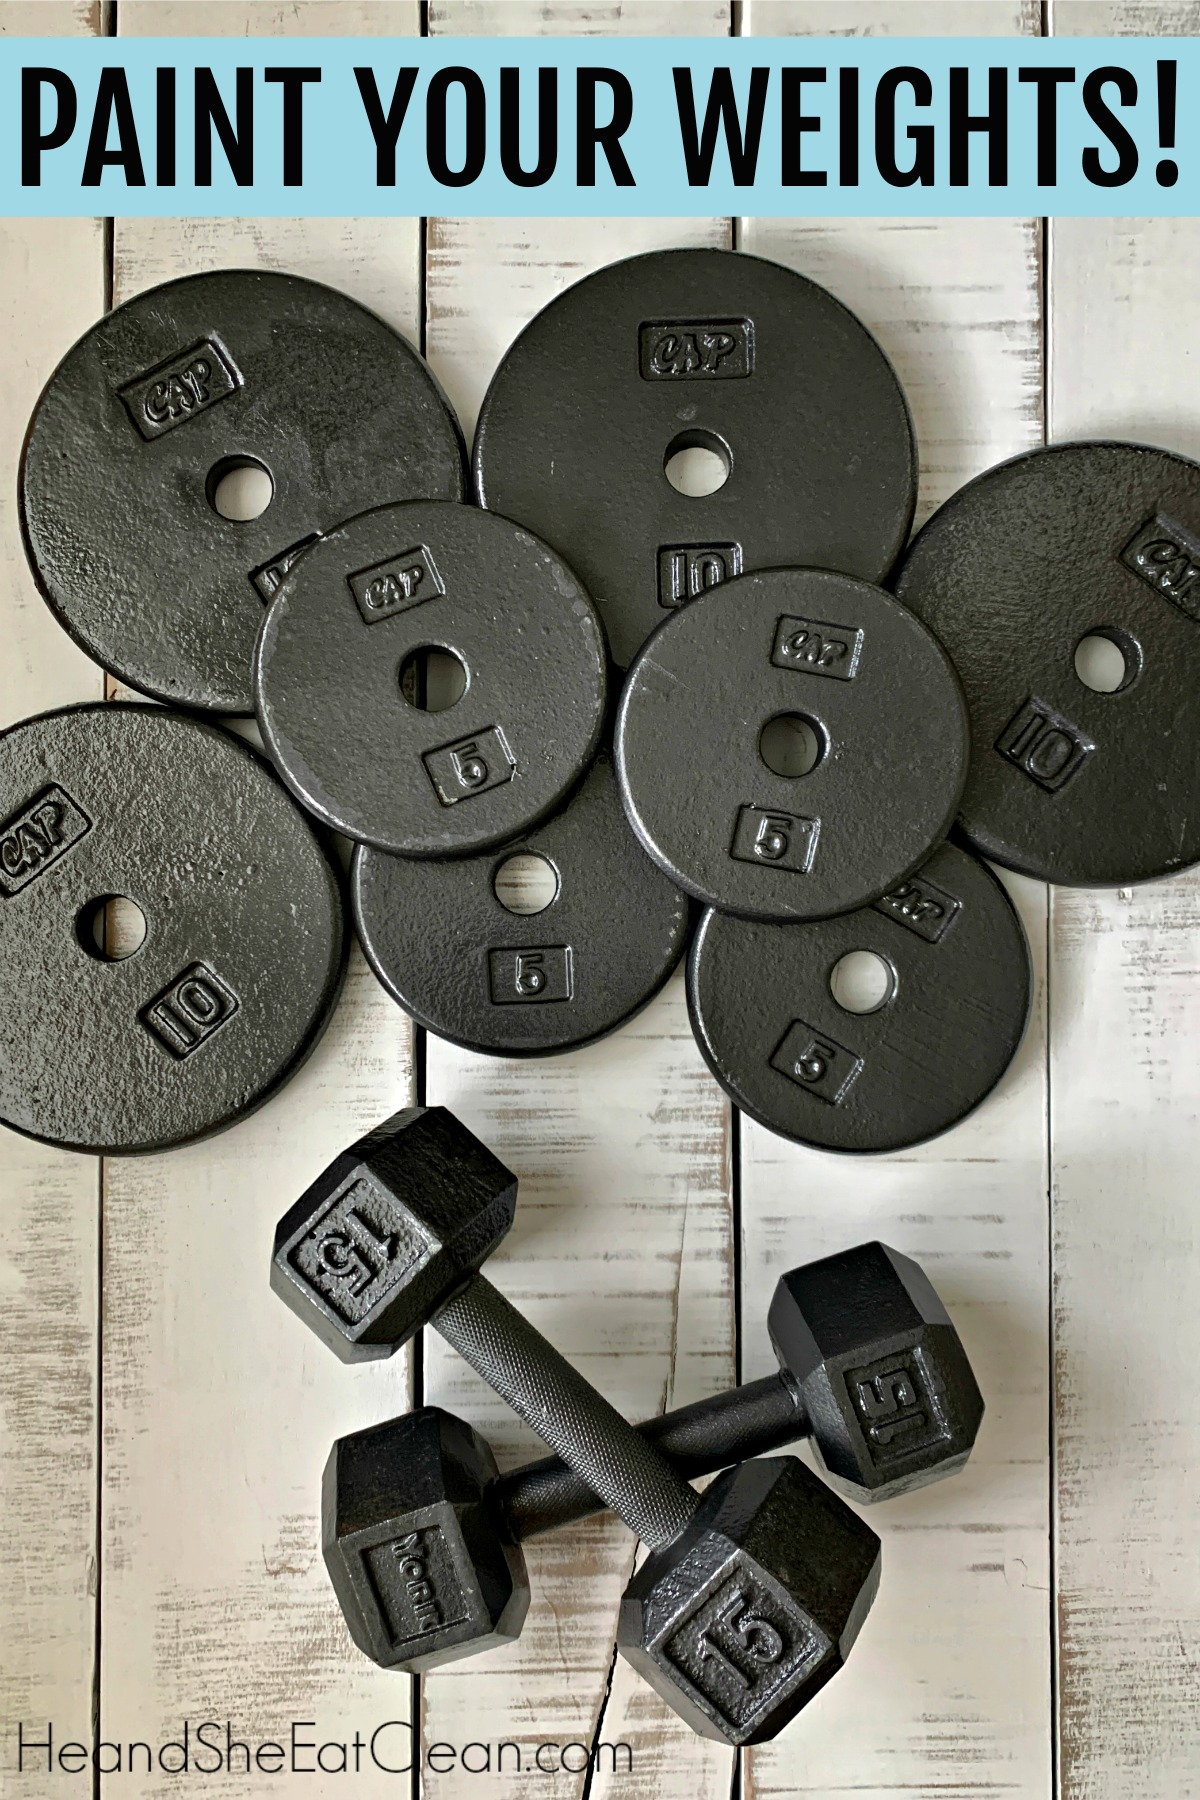 painted weight plates and a pair of painted dumbbells